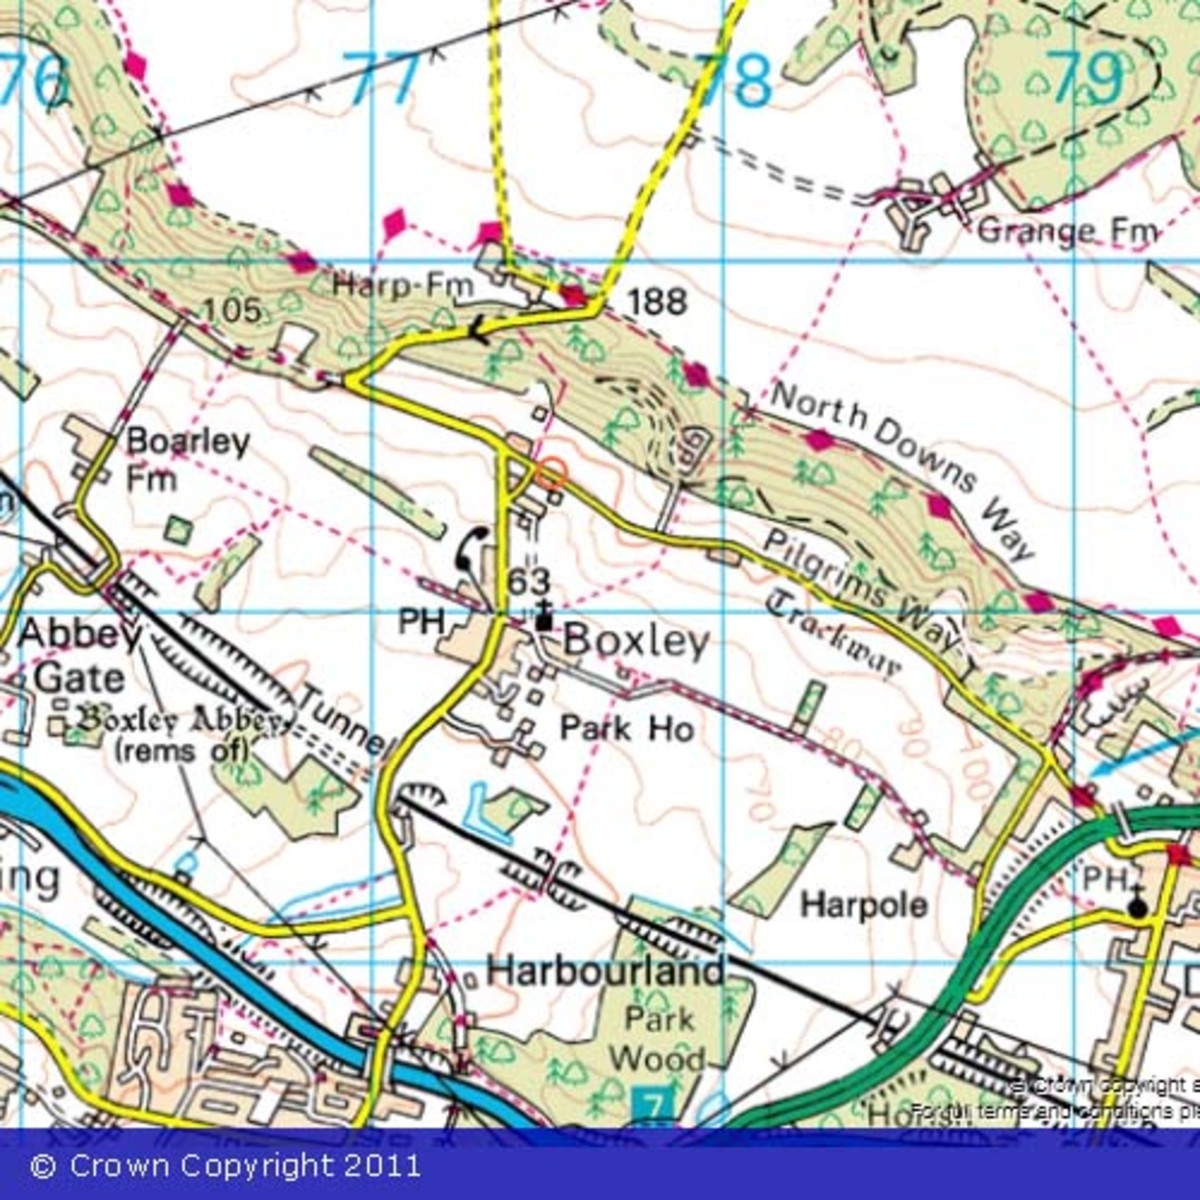 Ordnance Survey map - Public footpaths are the short red dash lines.